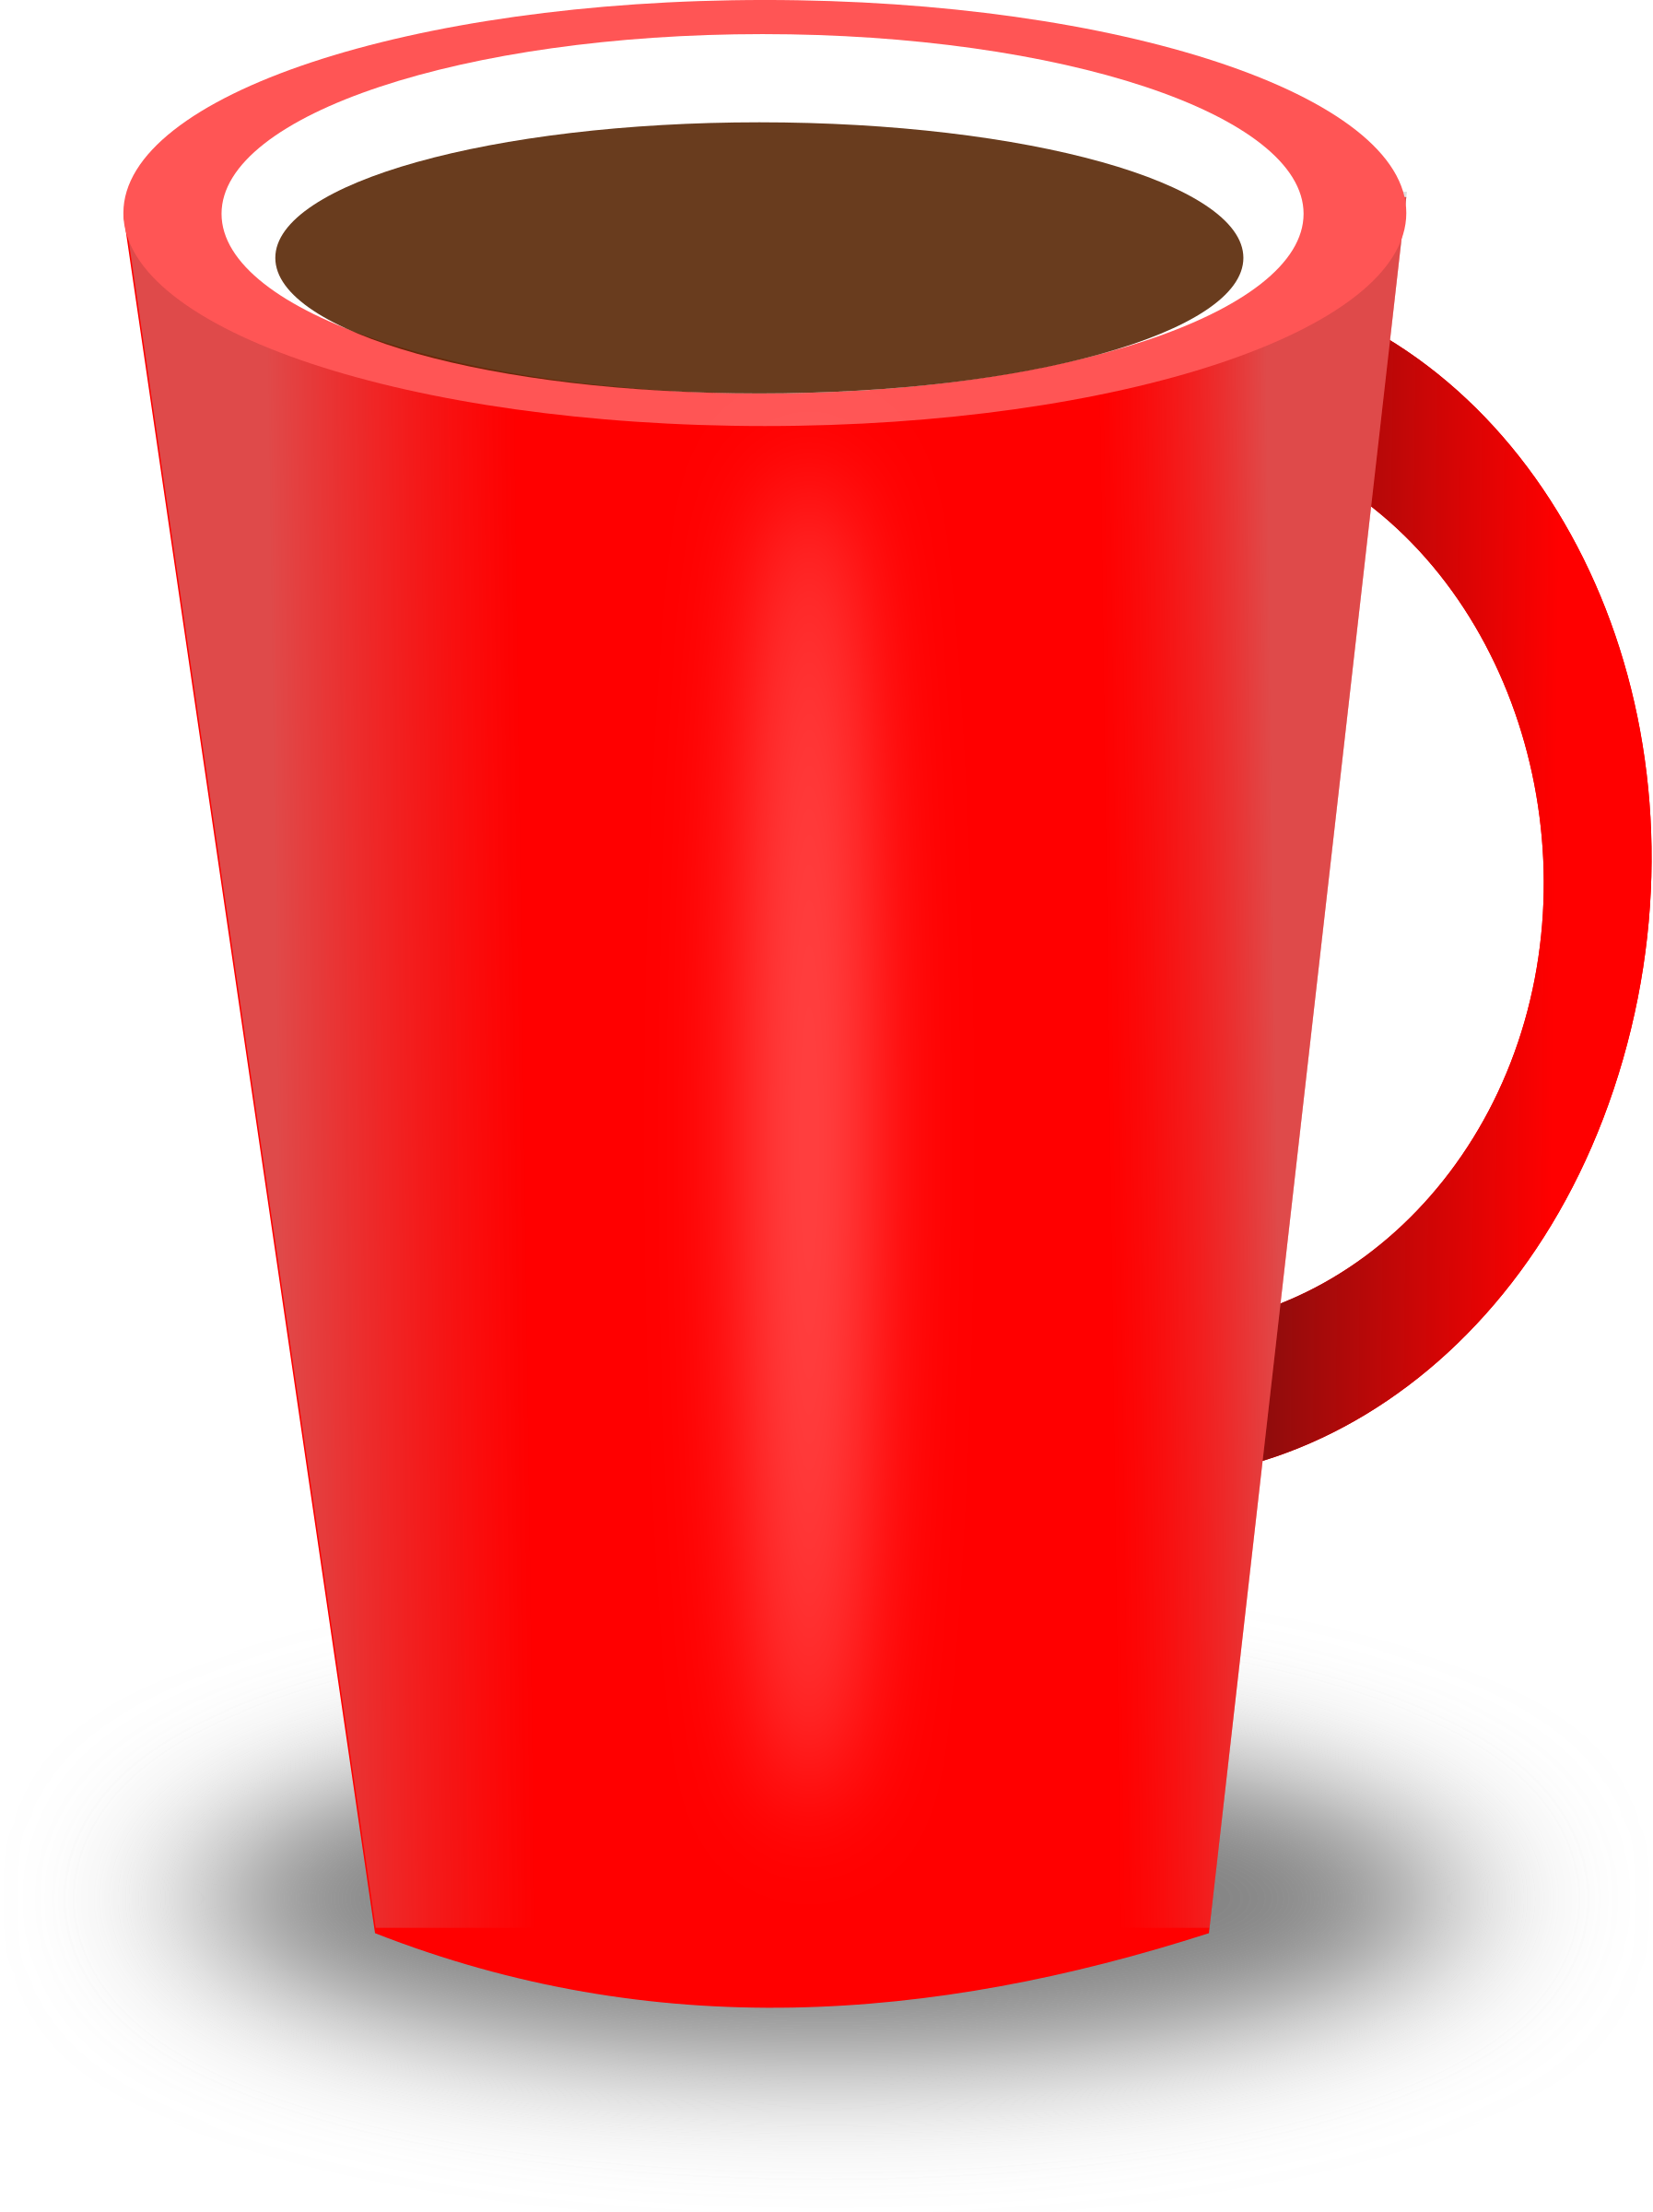 Mug transparent free collection. Clipart coffee red